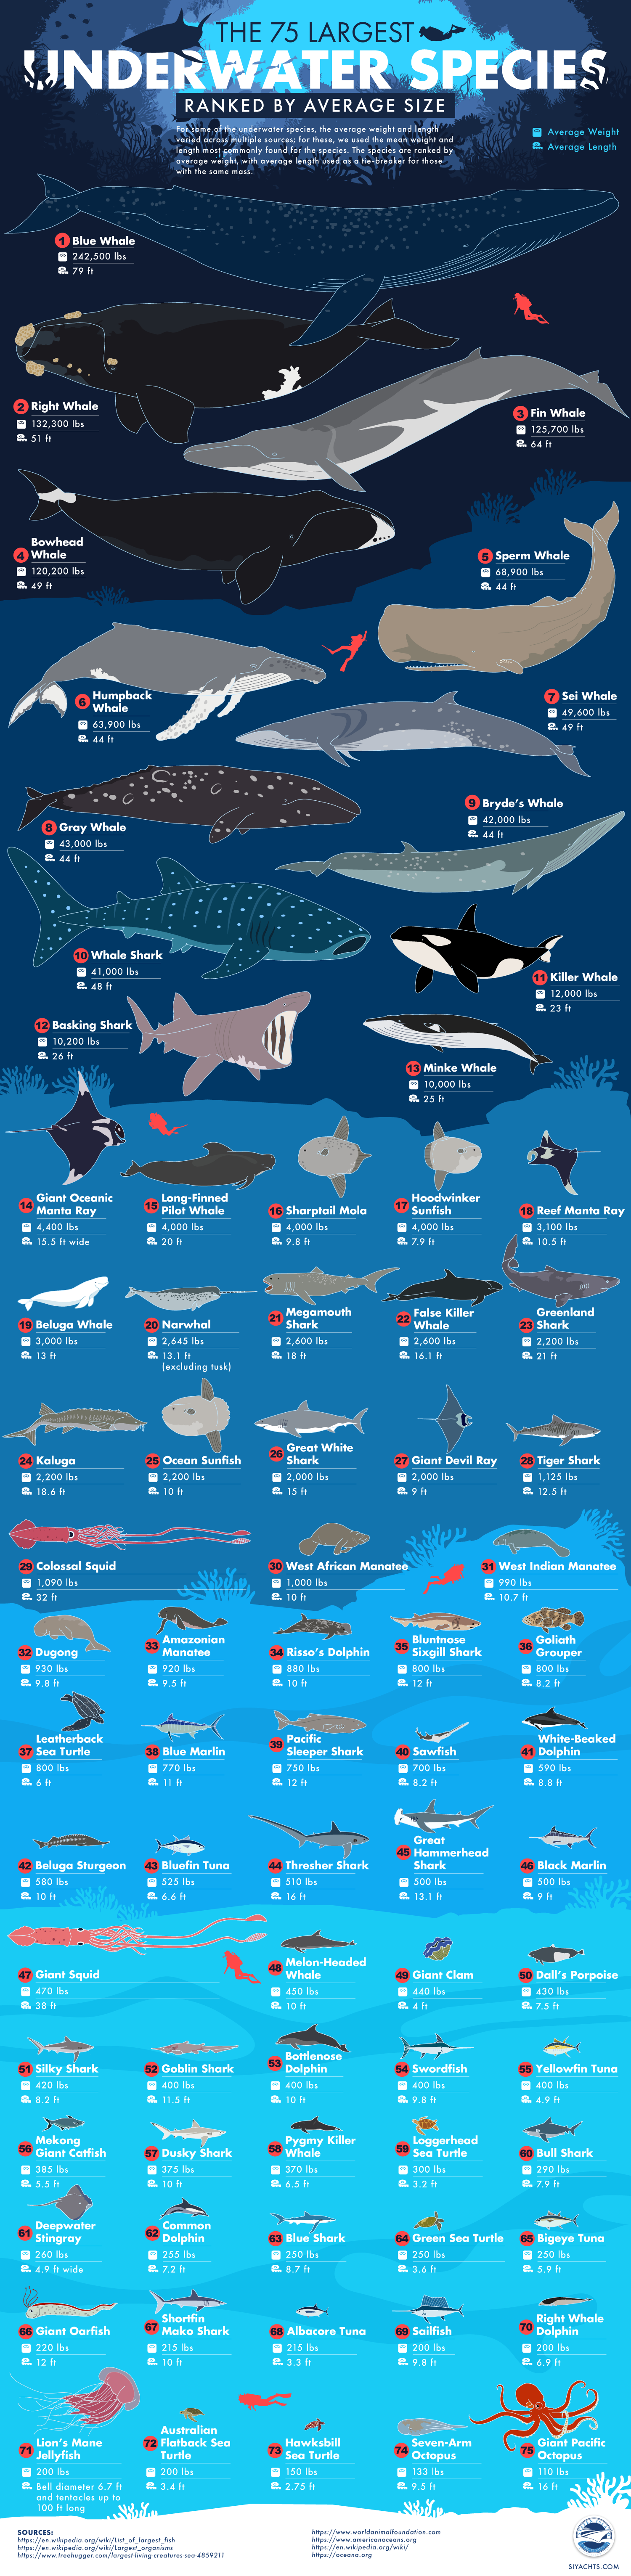 The 75 Largest Underwater Species Ranked by Size